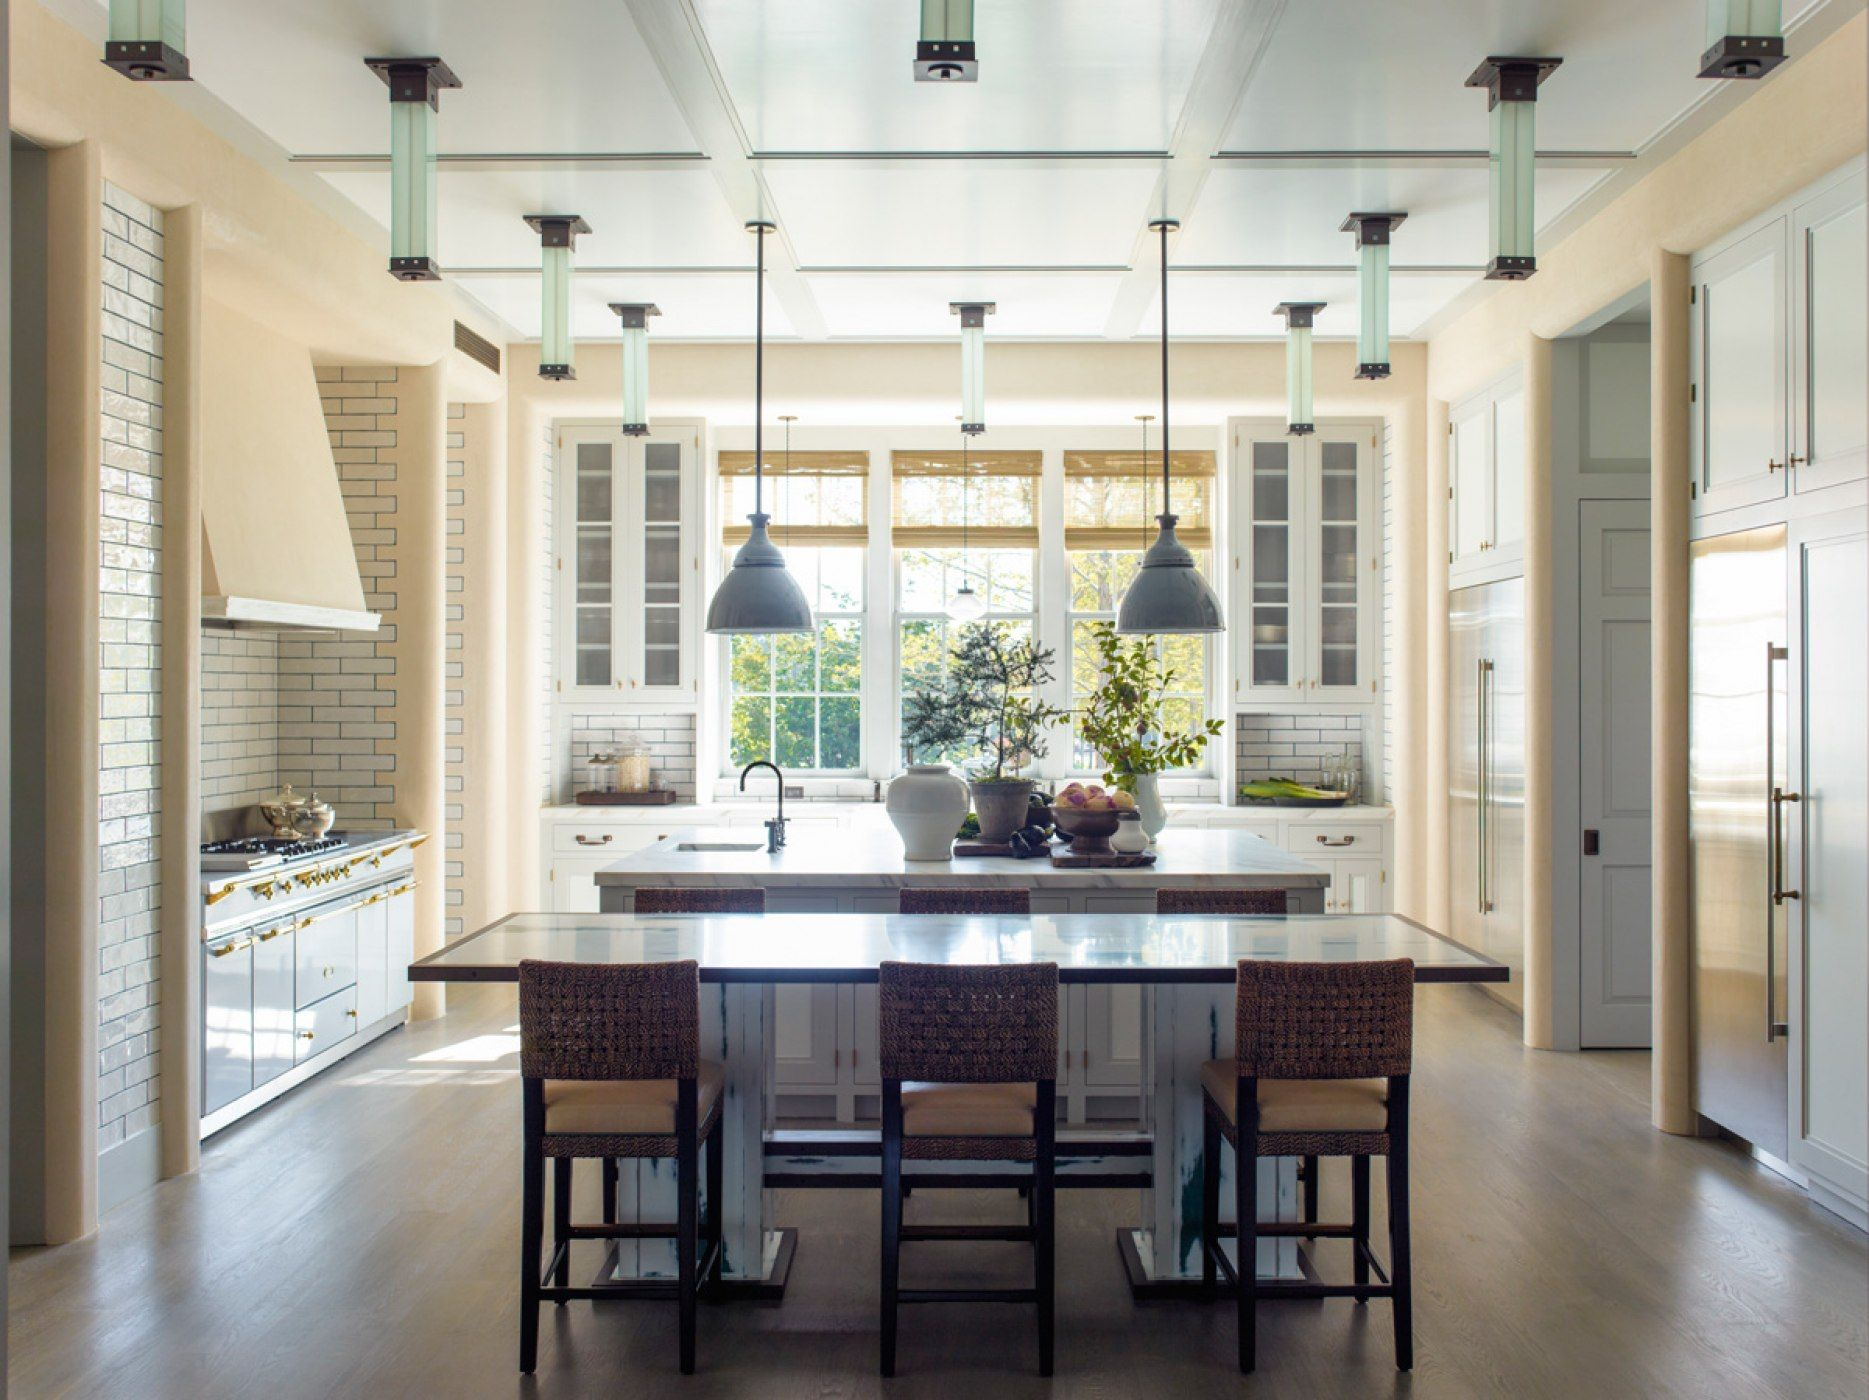 Historical Concepts | Homes | Kitchens | Pinterest | Historical ...